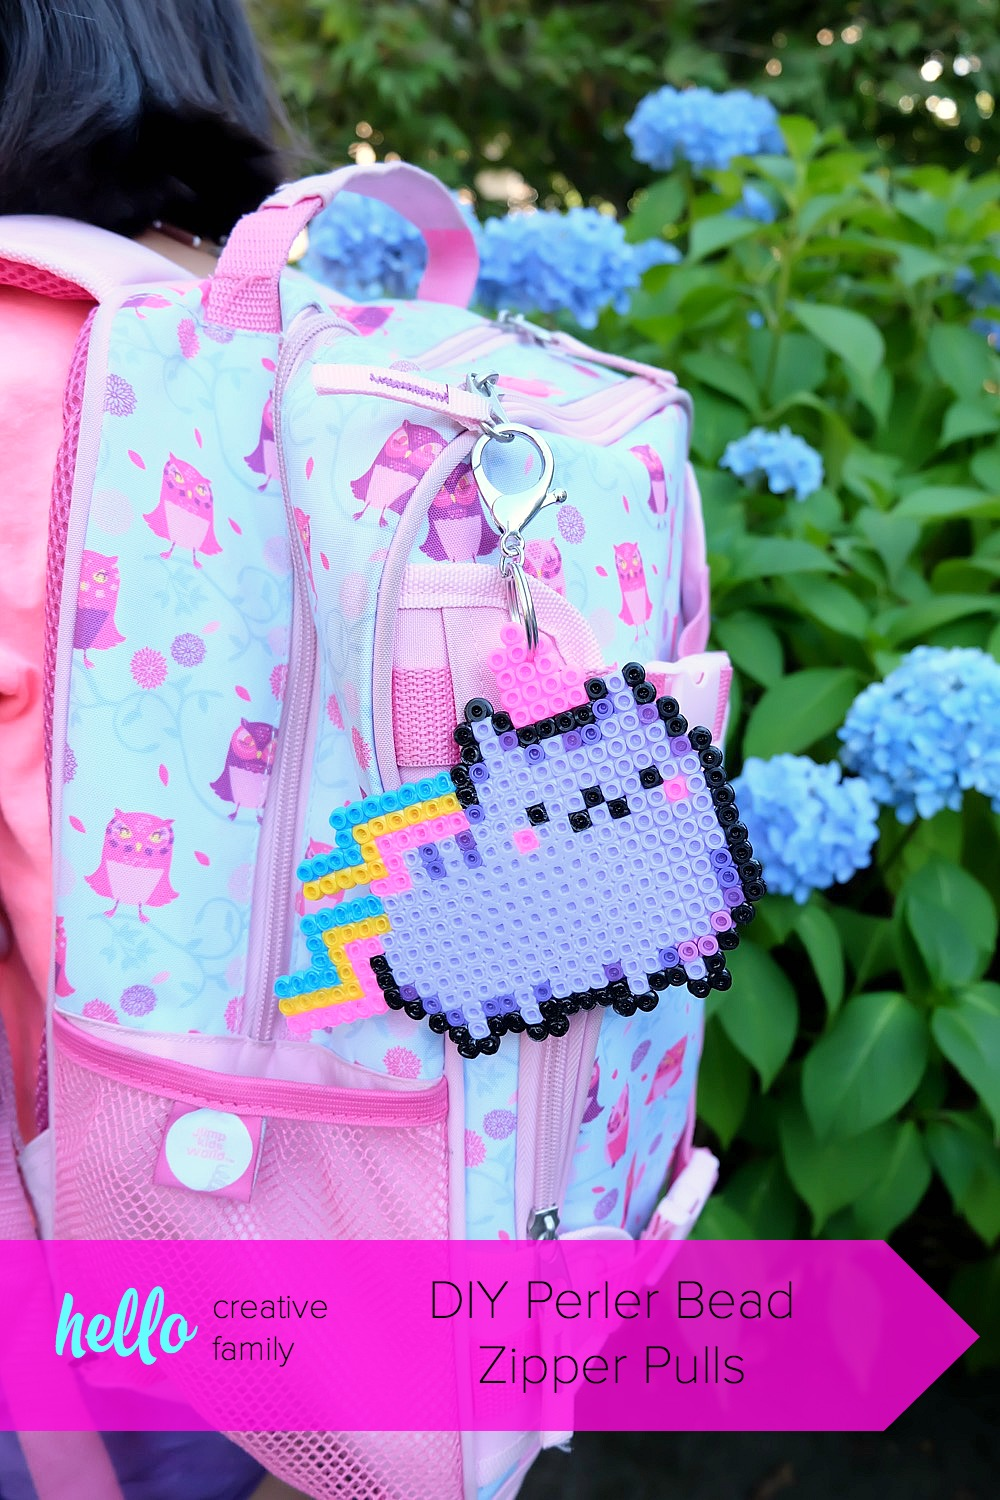 Bling out your kids backpack with this fun, creative, craft project! Make DIY Perler Bead Zipper Pulls that are perfect for back to school fashion accessories! A fun kids craft using hama beads!